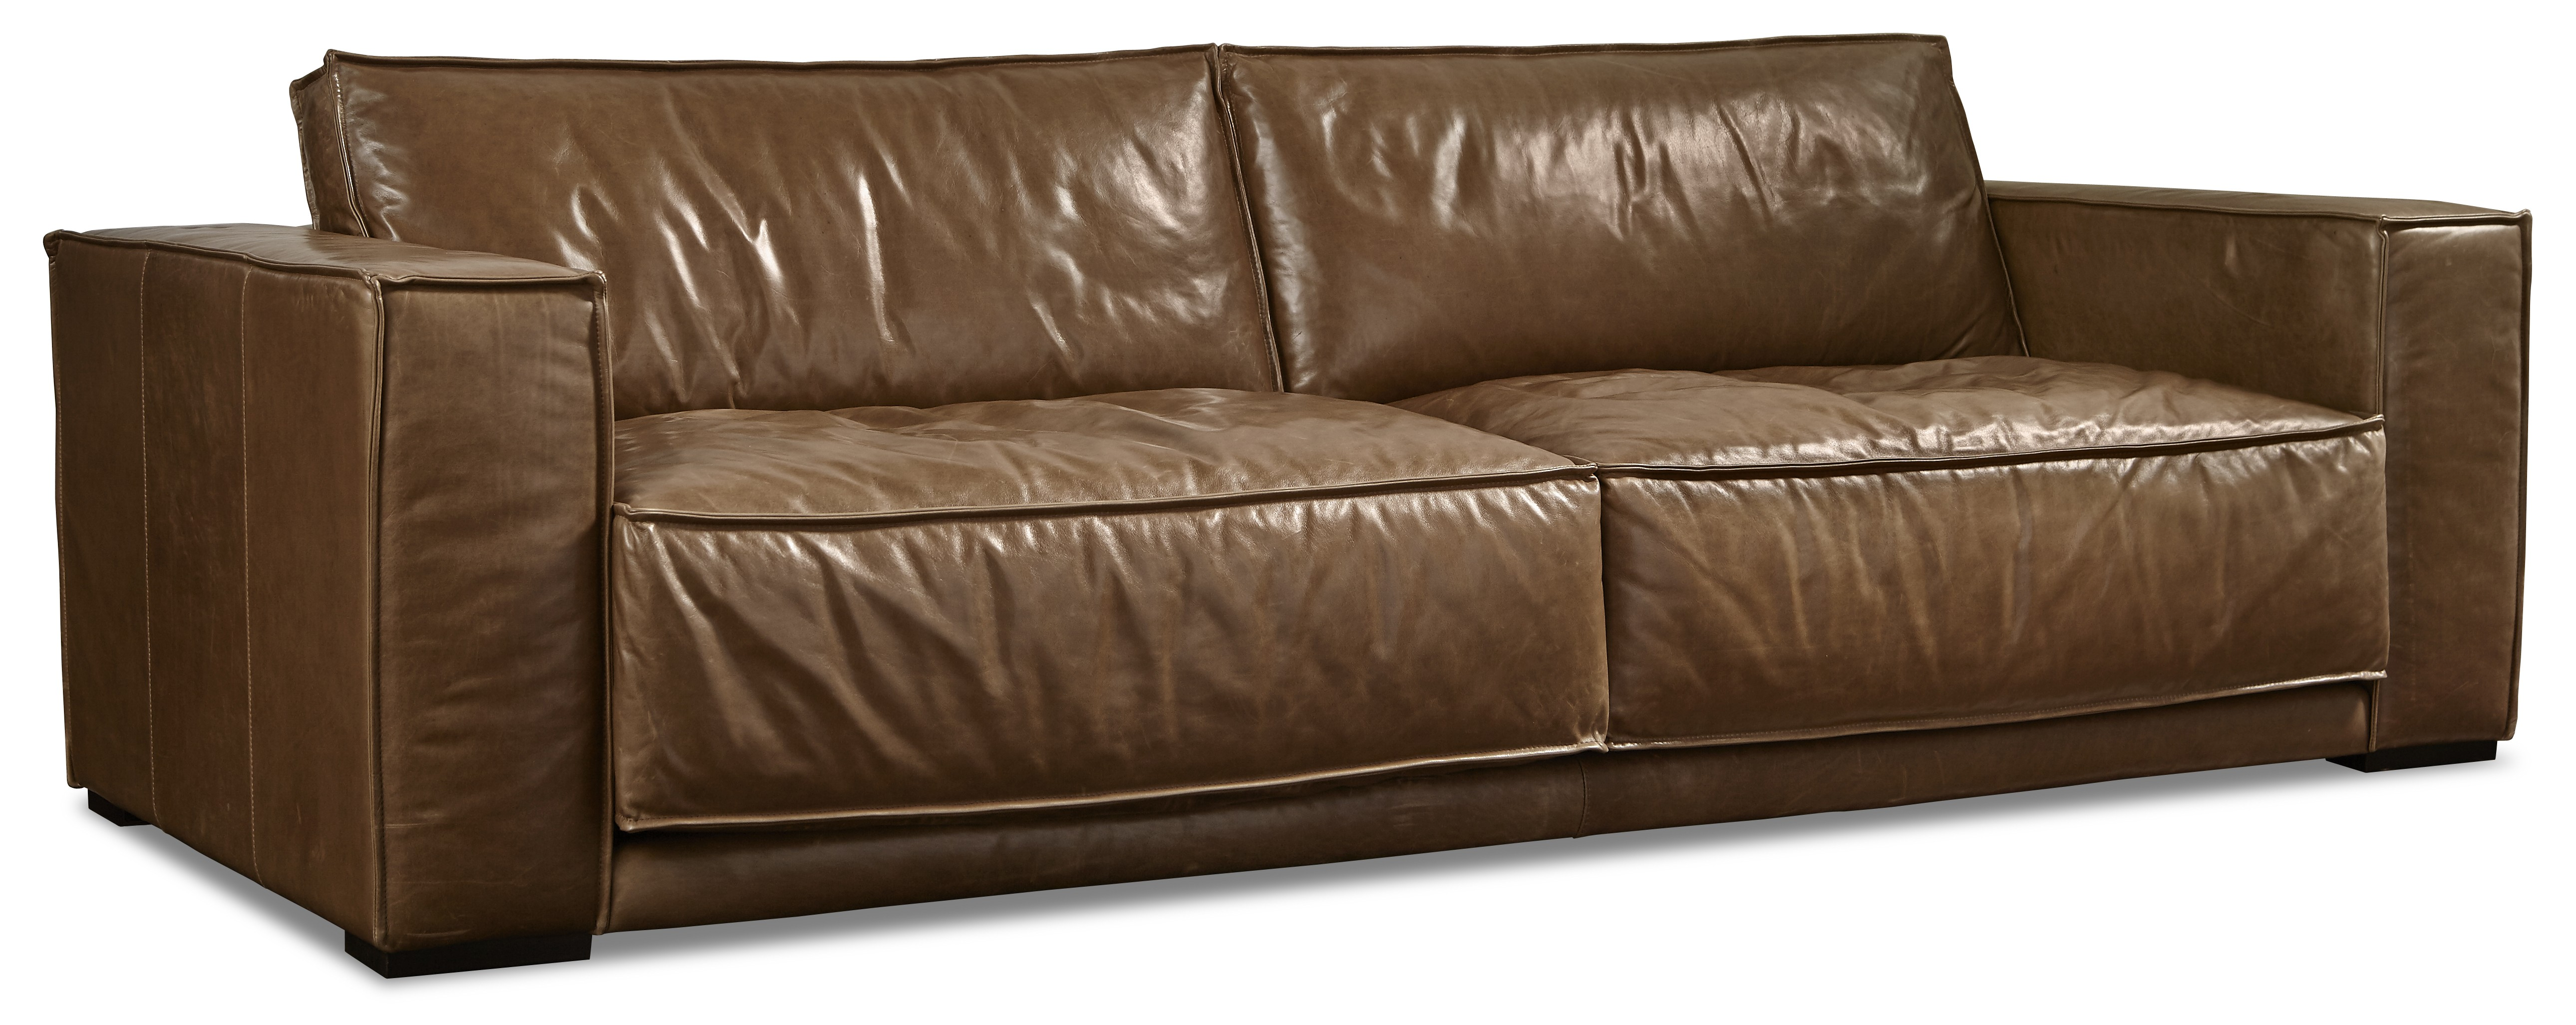 American Leather sofa top Stanton sofa by American Leather Collection